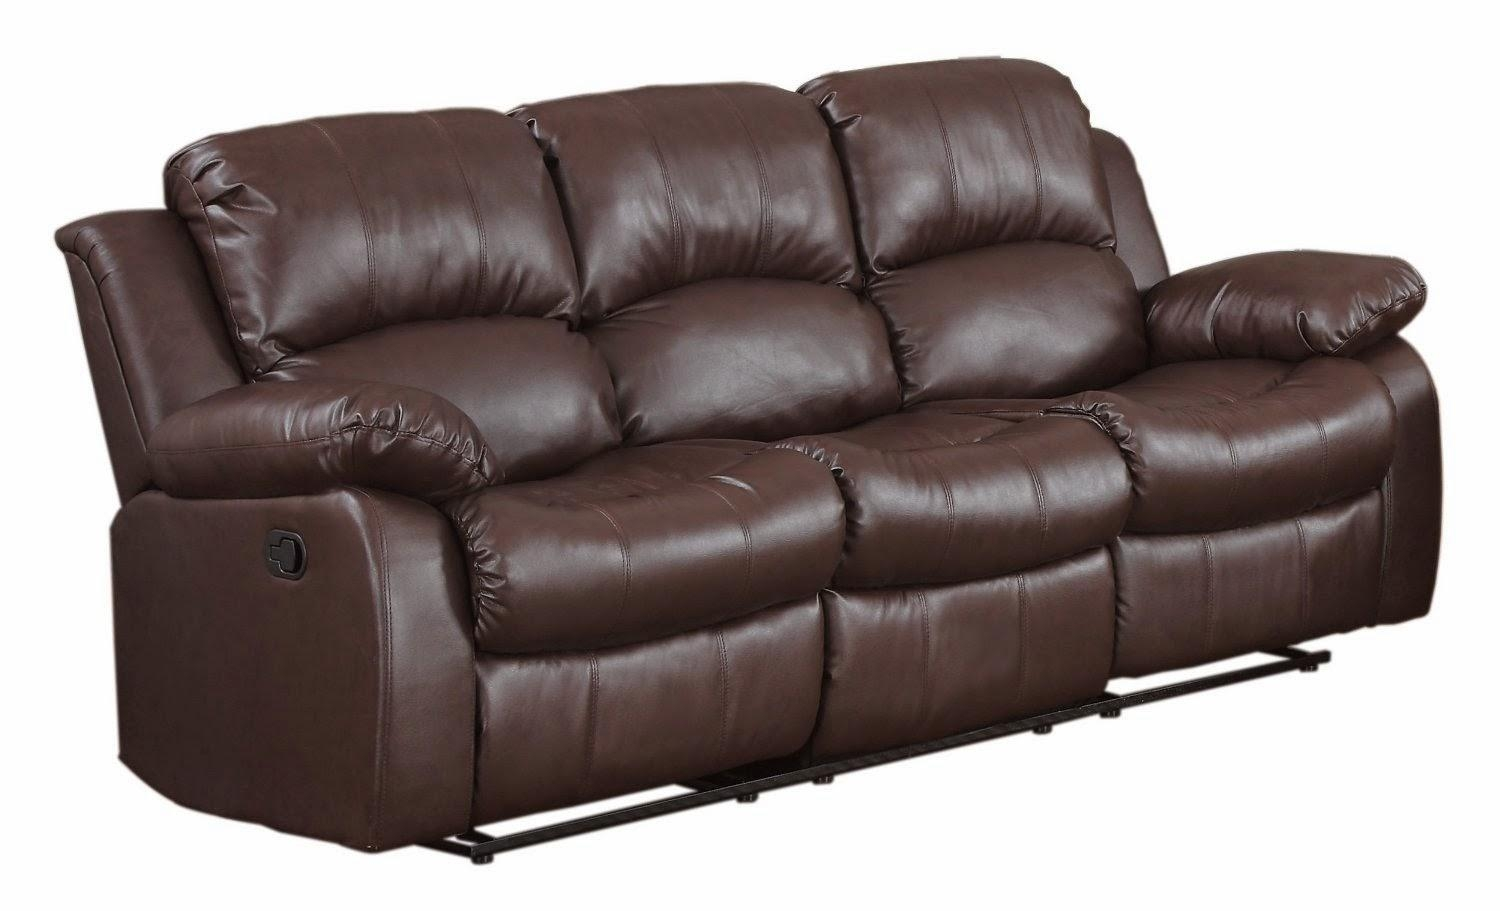 Sofas Center : Costco Leatherning Sofa Berkline Weekenderner Sets For Berkline Recliner Sofas (Image 10 of 20)